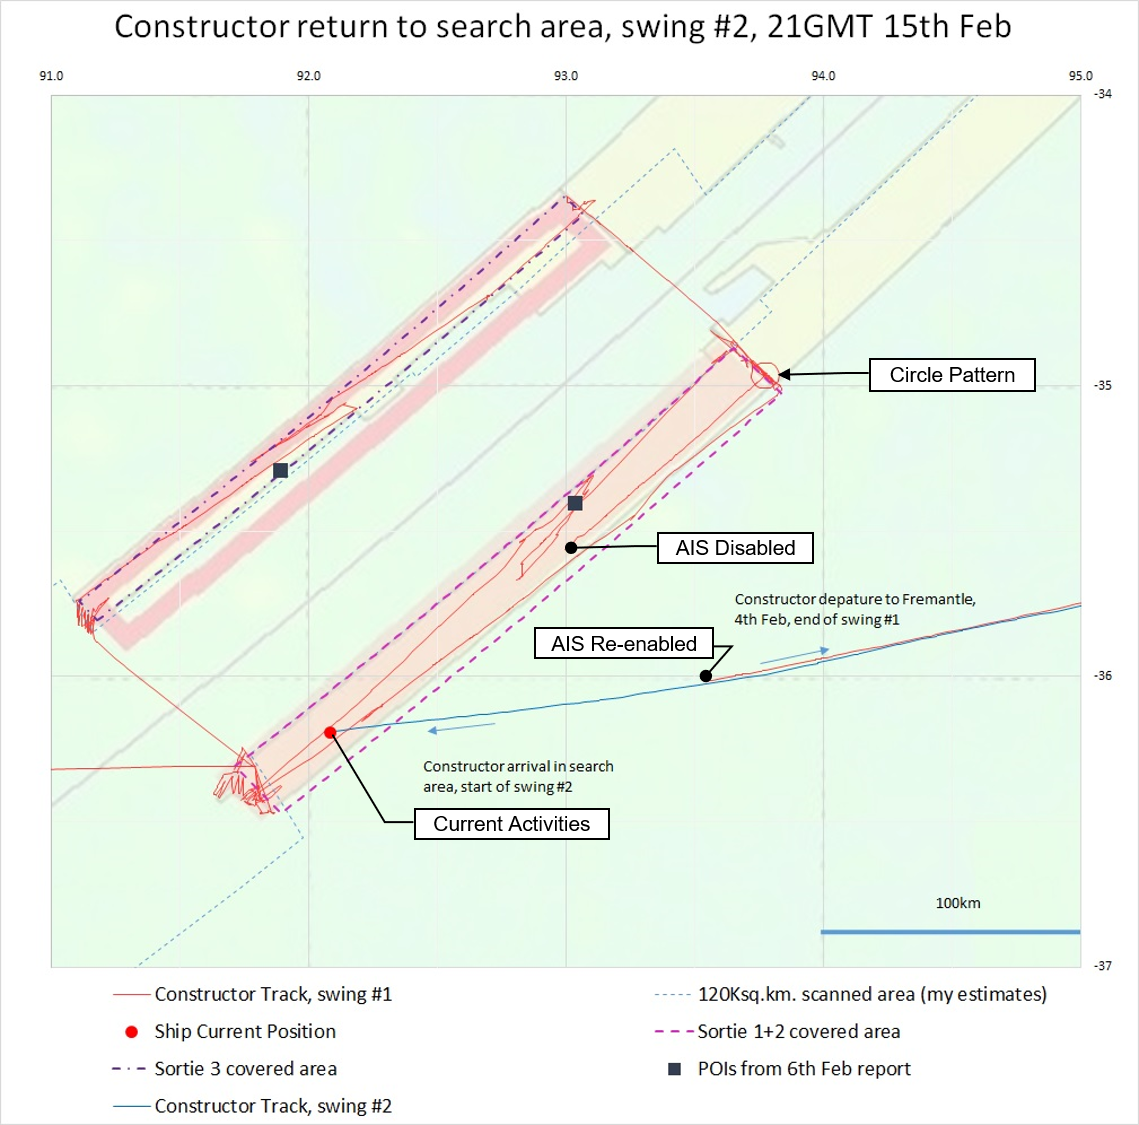 Mh370 Search Update Feb 16 2018 The Disappearance Of Wiring Mainbreaker Box In Detached Garage Electrical Diy Chatroom Seabed Constructors Path As Adapted From Work Richard Cole Click On Image To Enlarge